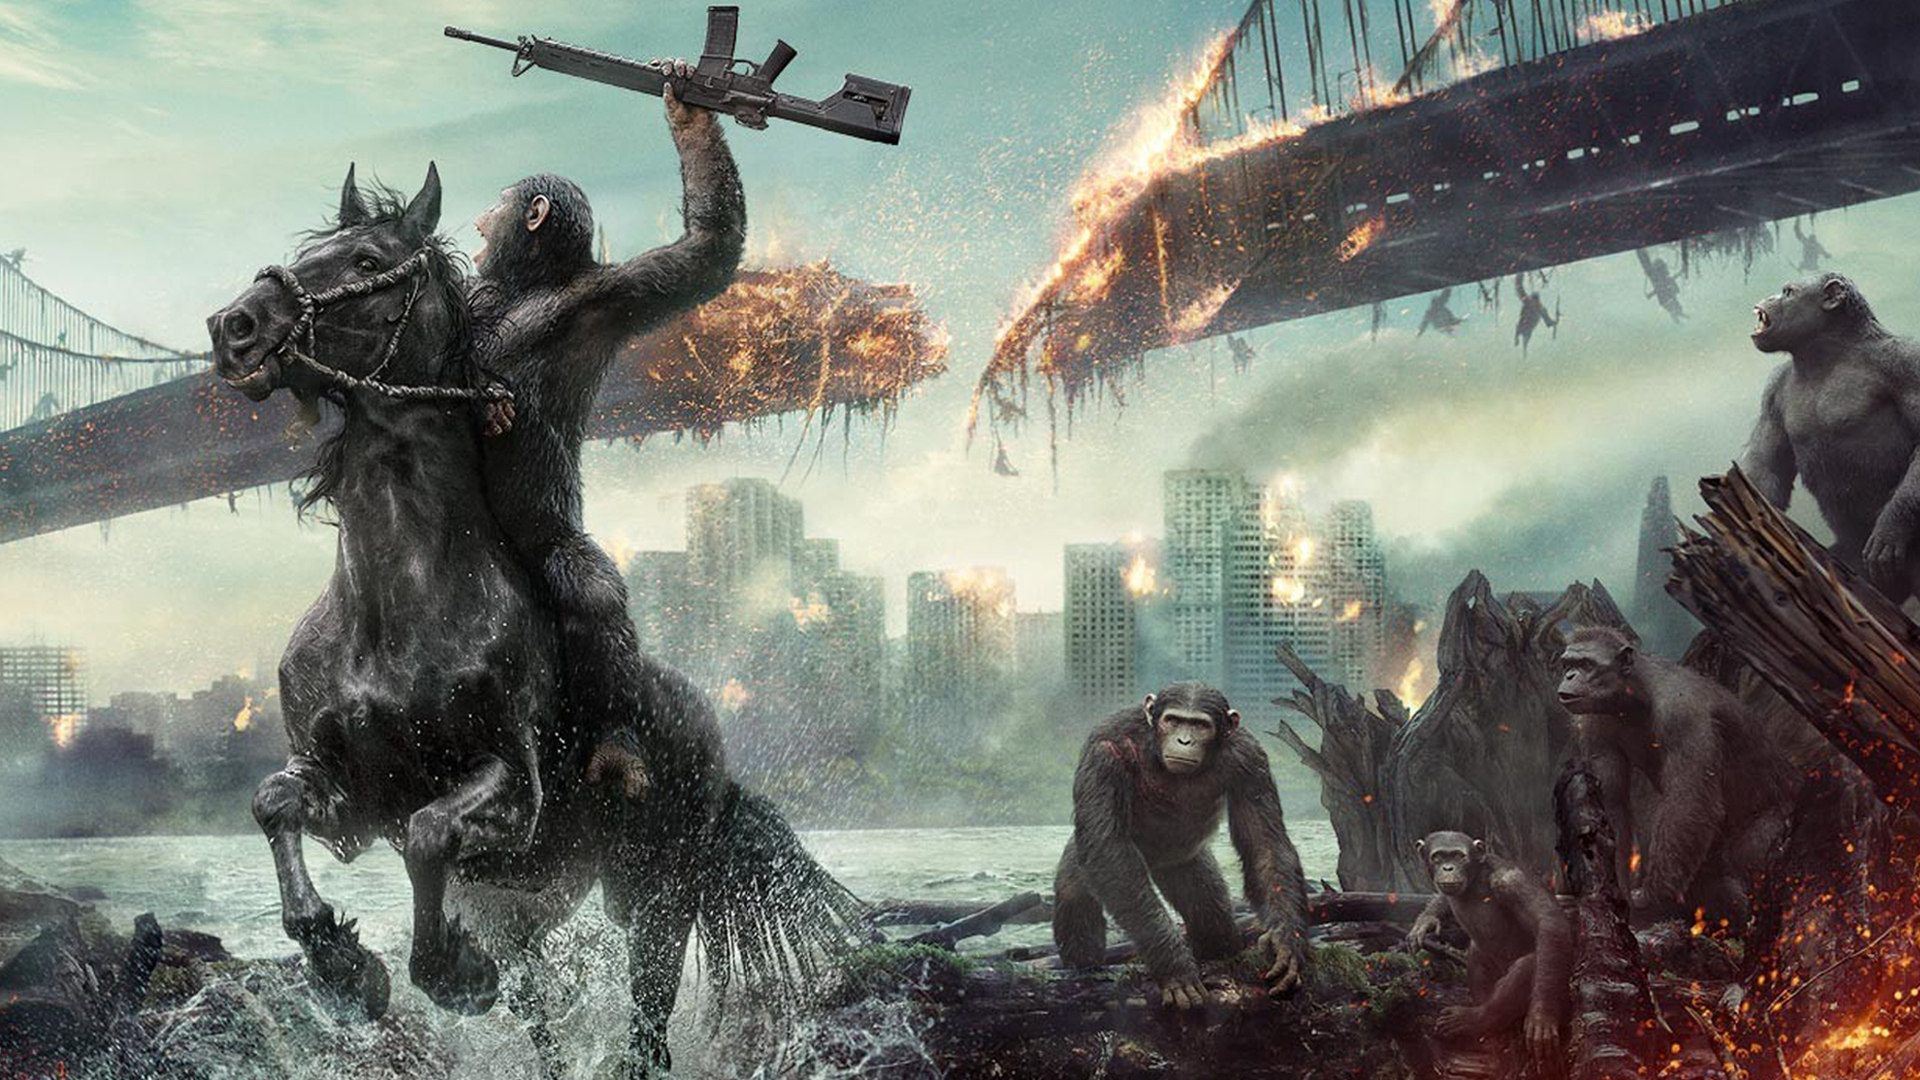 Planet Of The Apes Wallpaper: Dawn Of The Planet Of The Apes Wallpaper 1920x1080 By